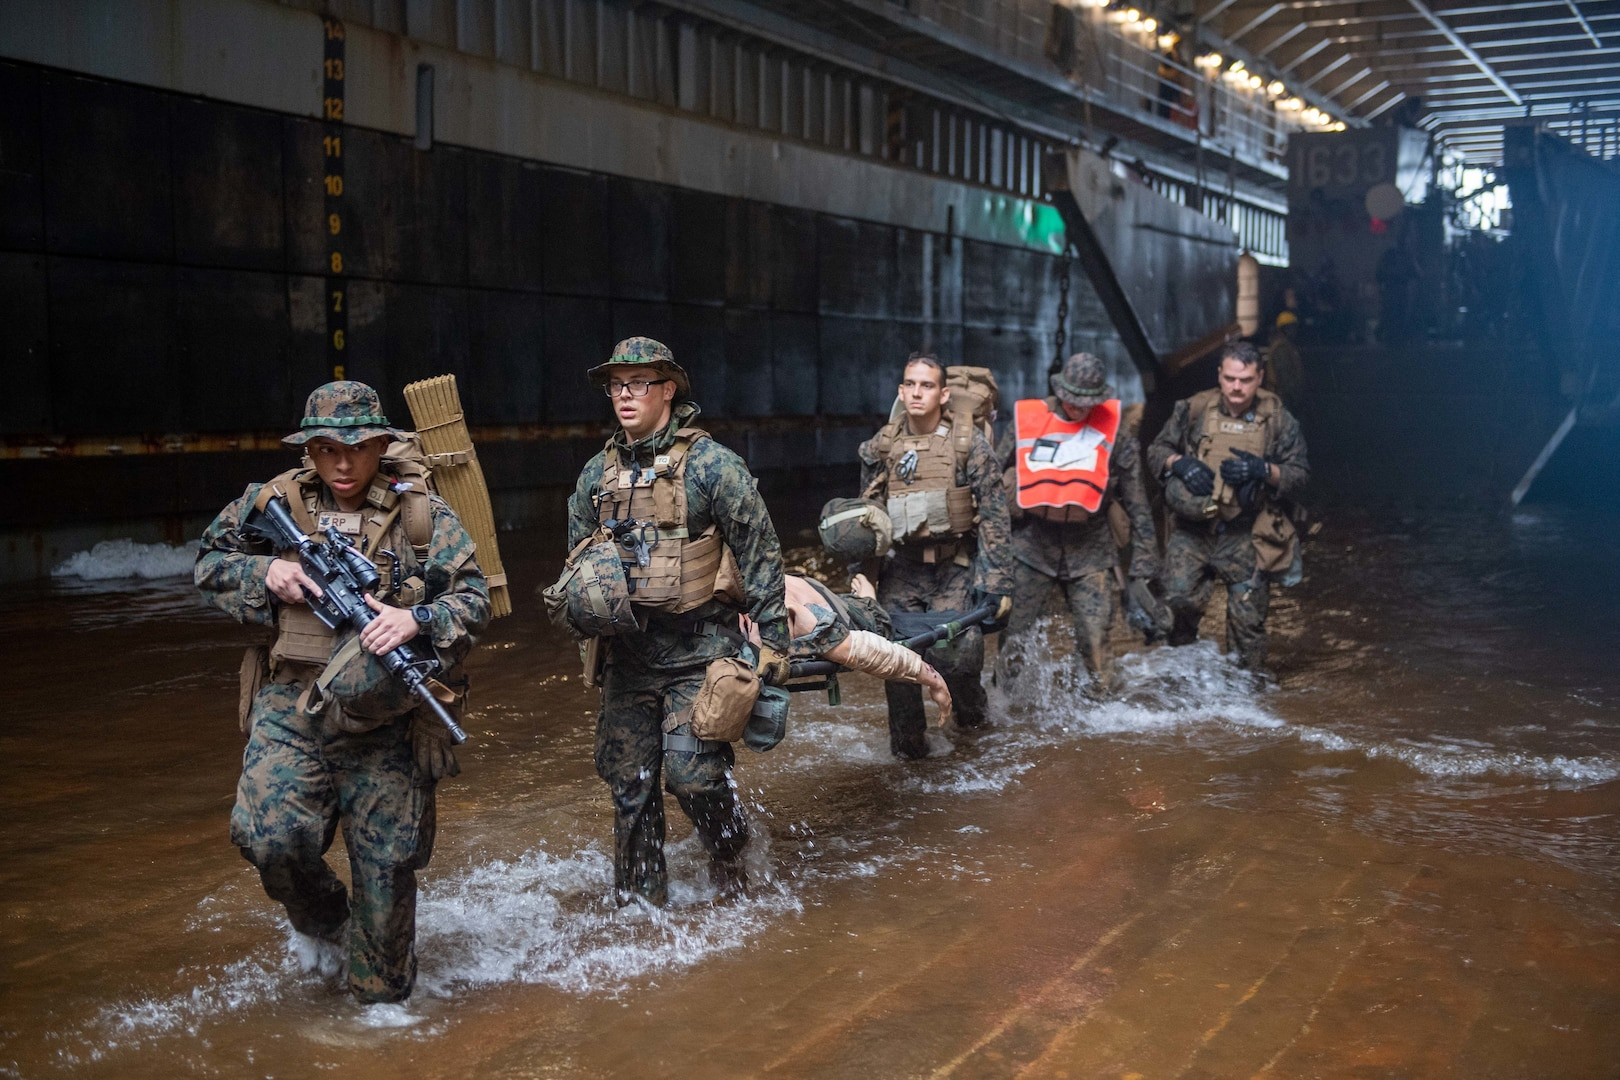 America ARG-31st MEU team implements waterborne ambulance during exercise